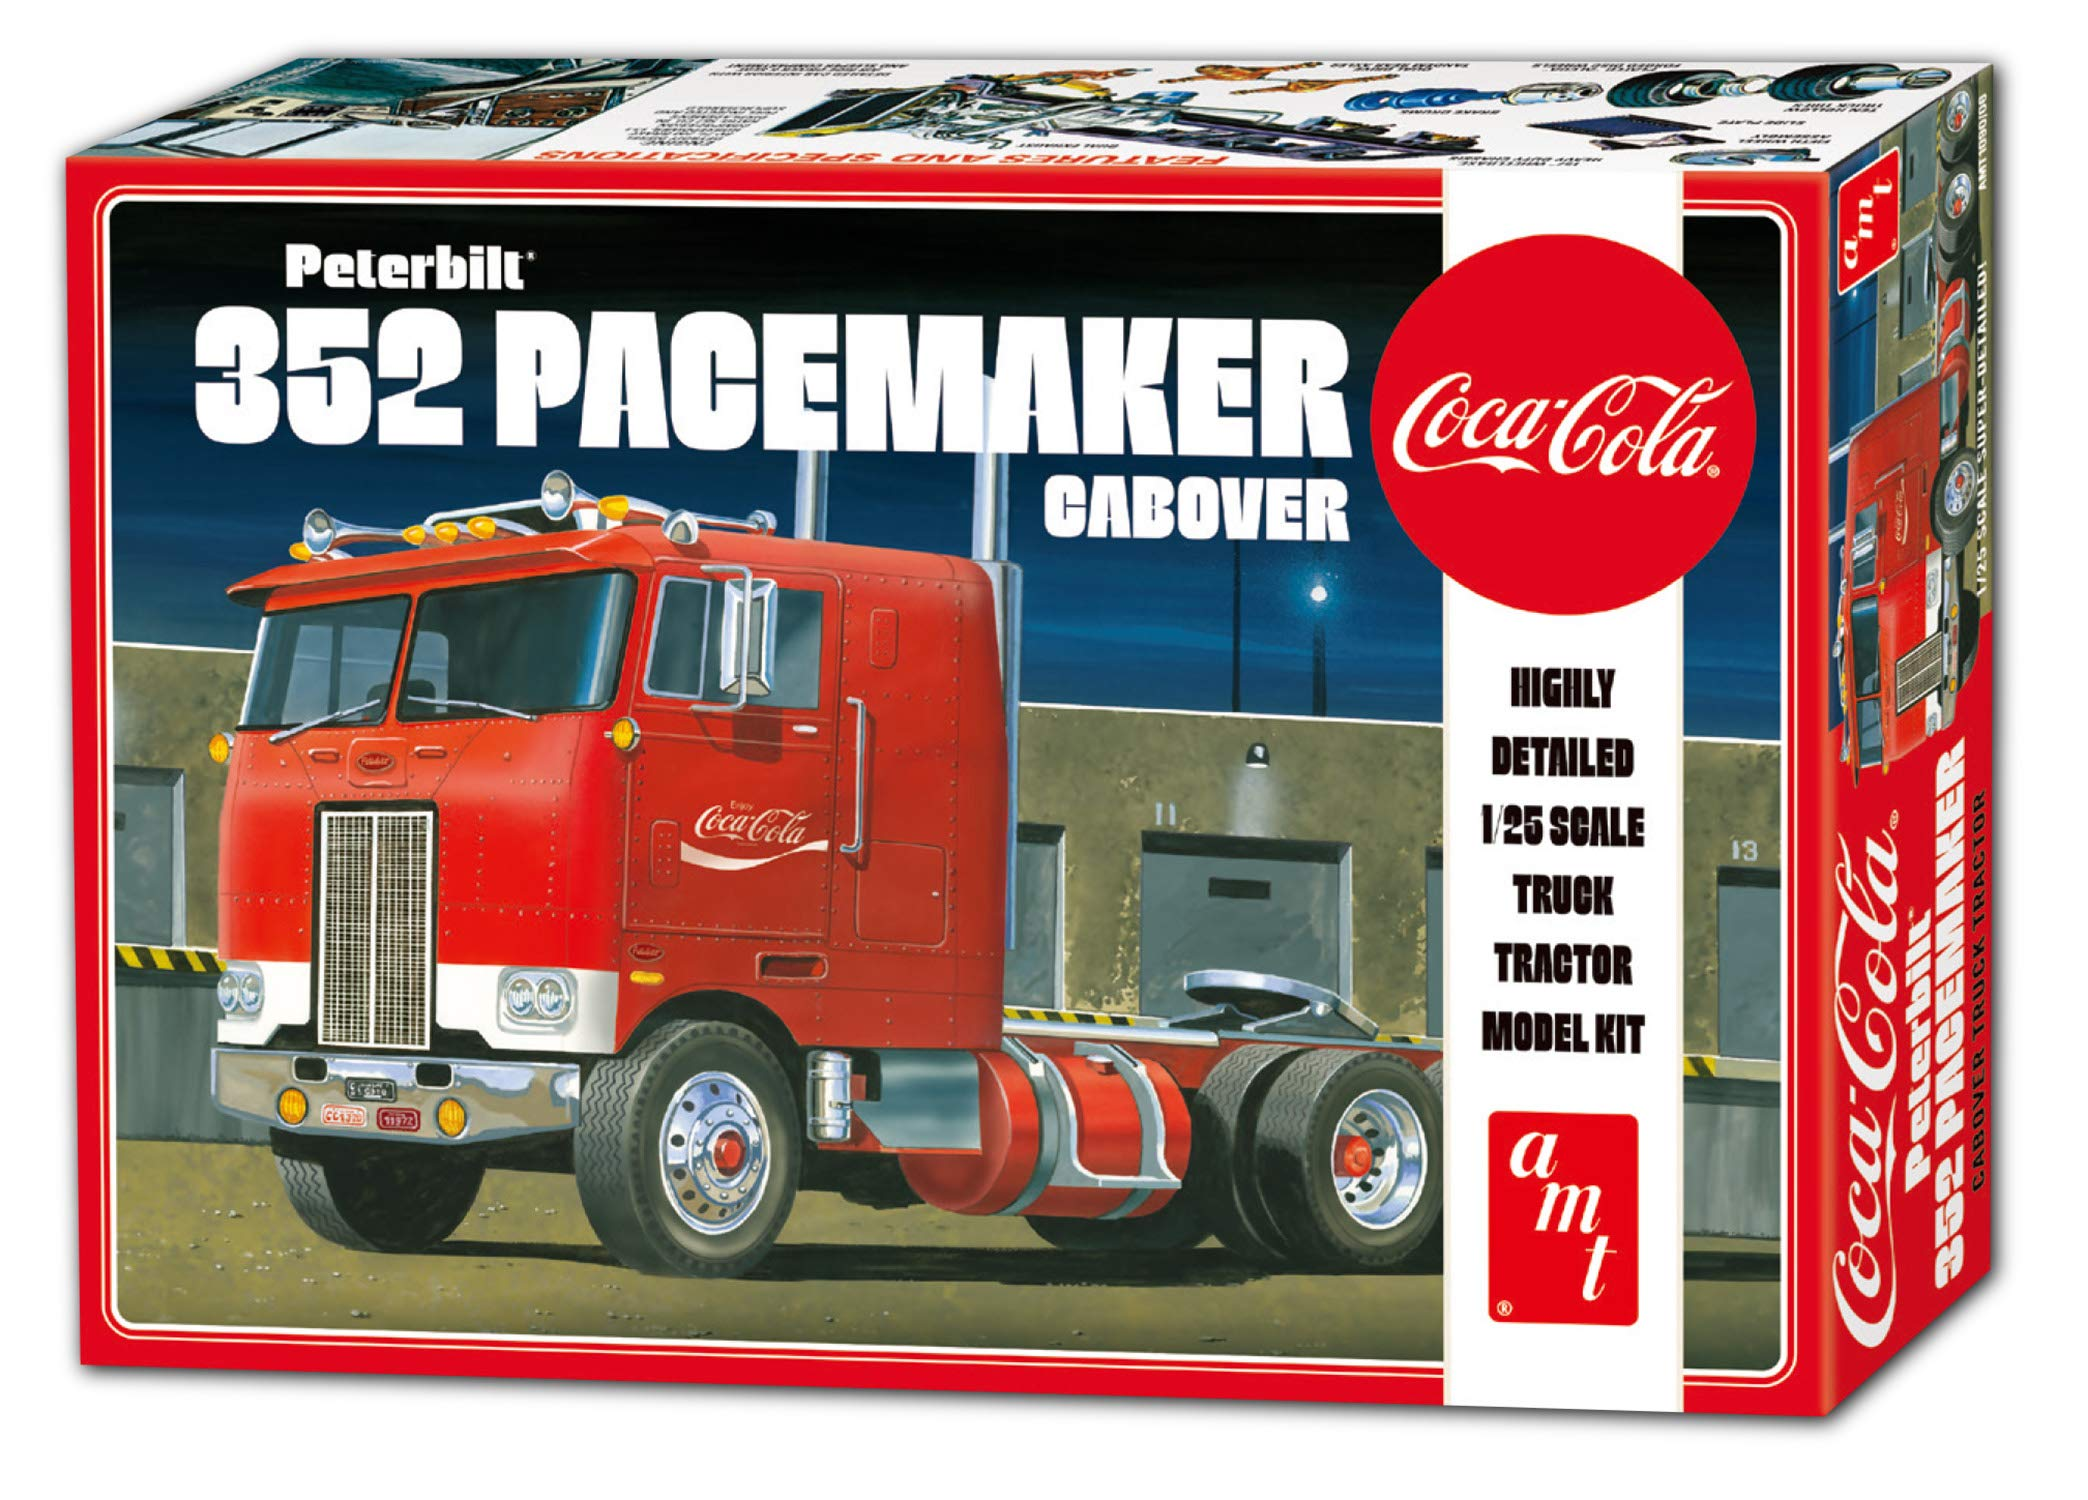 AMT AMT1090 1:25 Peterbilt 352 Pacemaker Cabover-AMT1090 by AMT